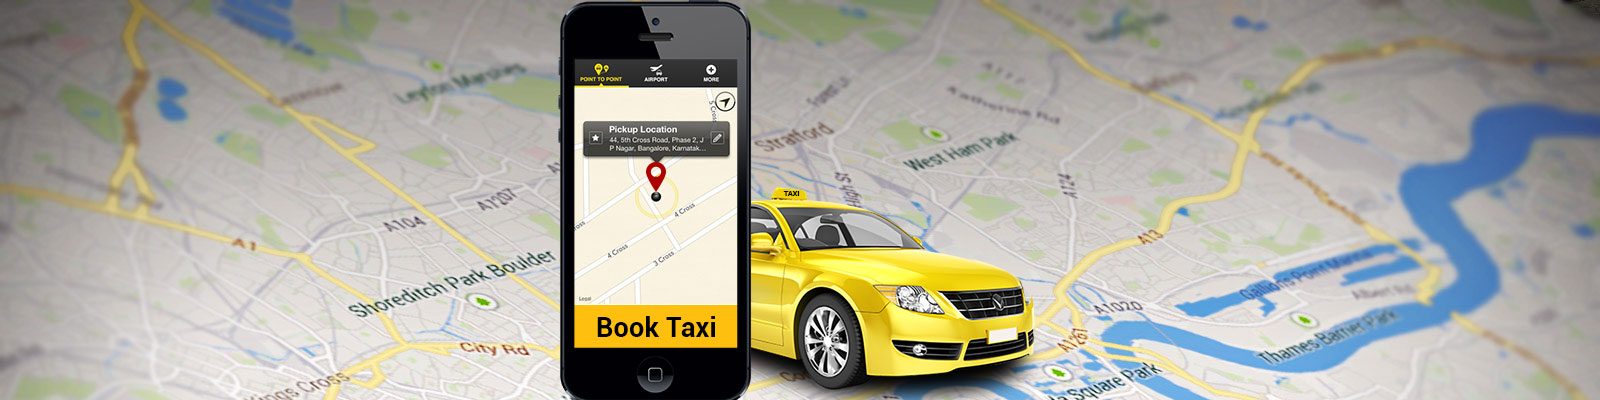 Develop Taxi Booking Mobile App For Your Business